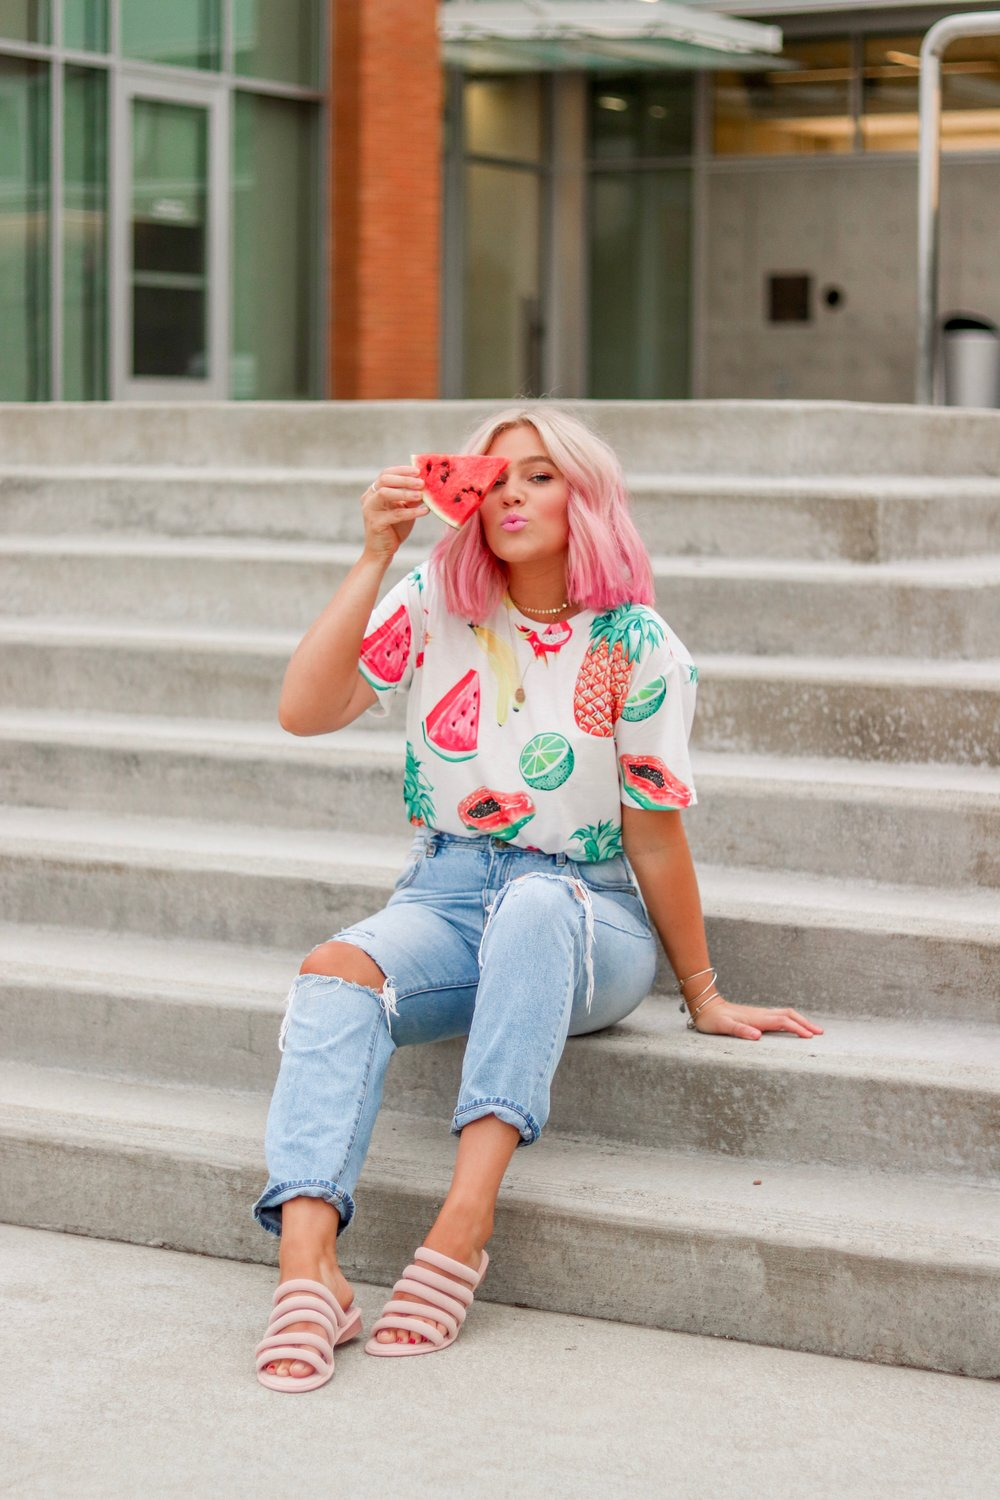 Pink Hair, Don't Care - bresheppard.com